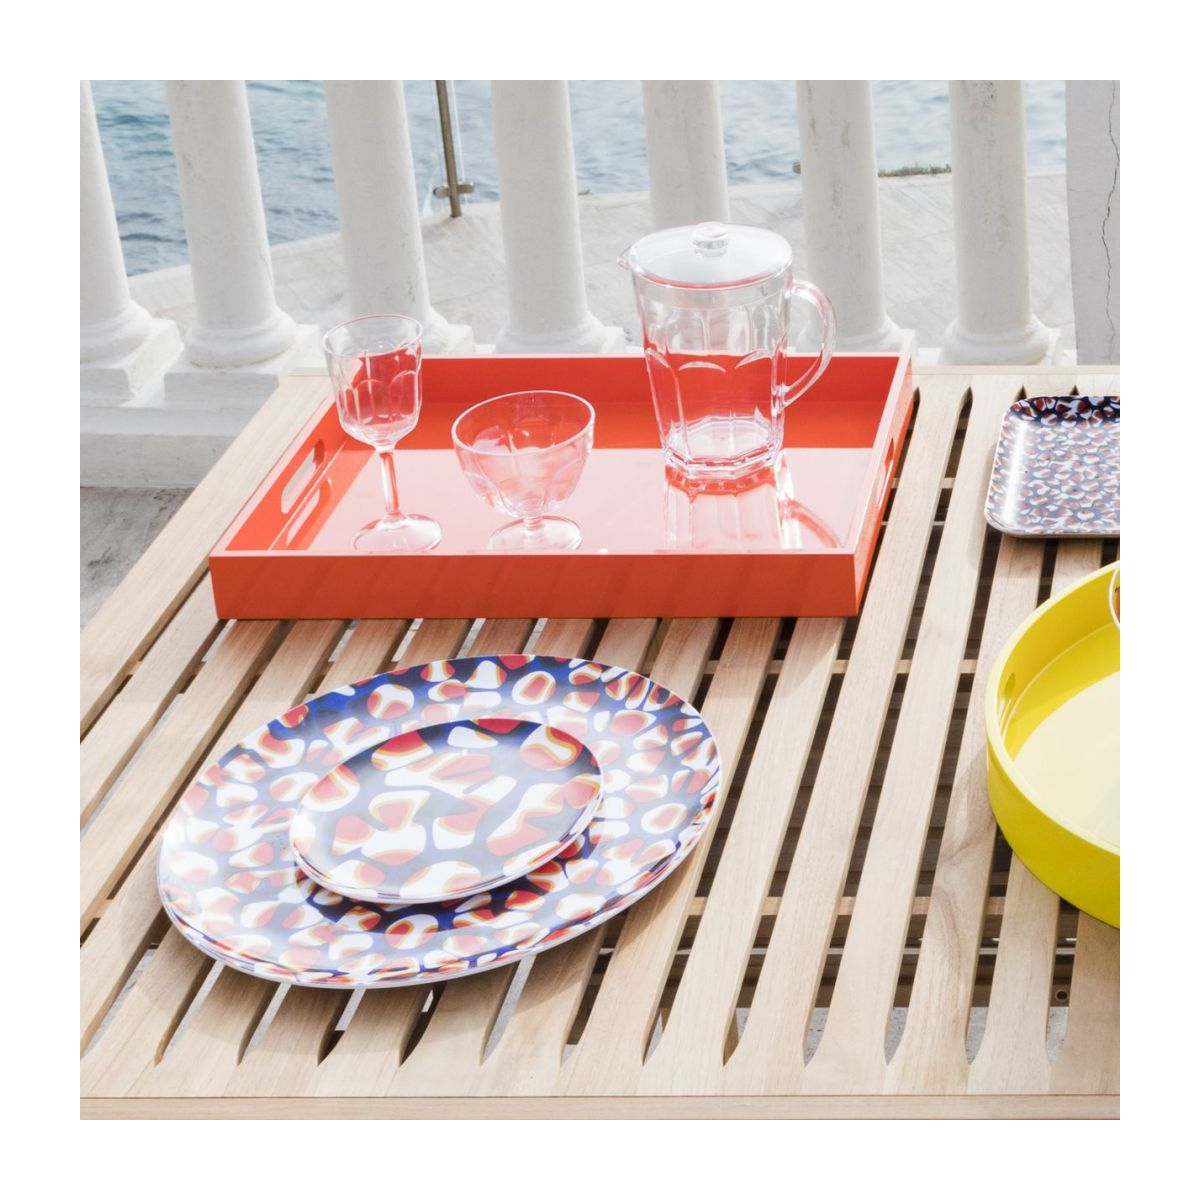 Tray made of melamine 38cm, with patterns n°4